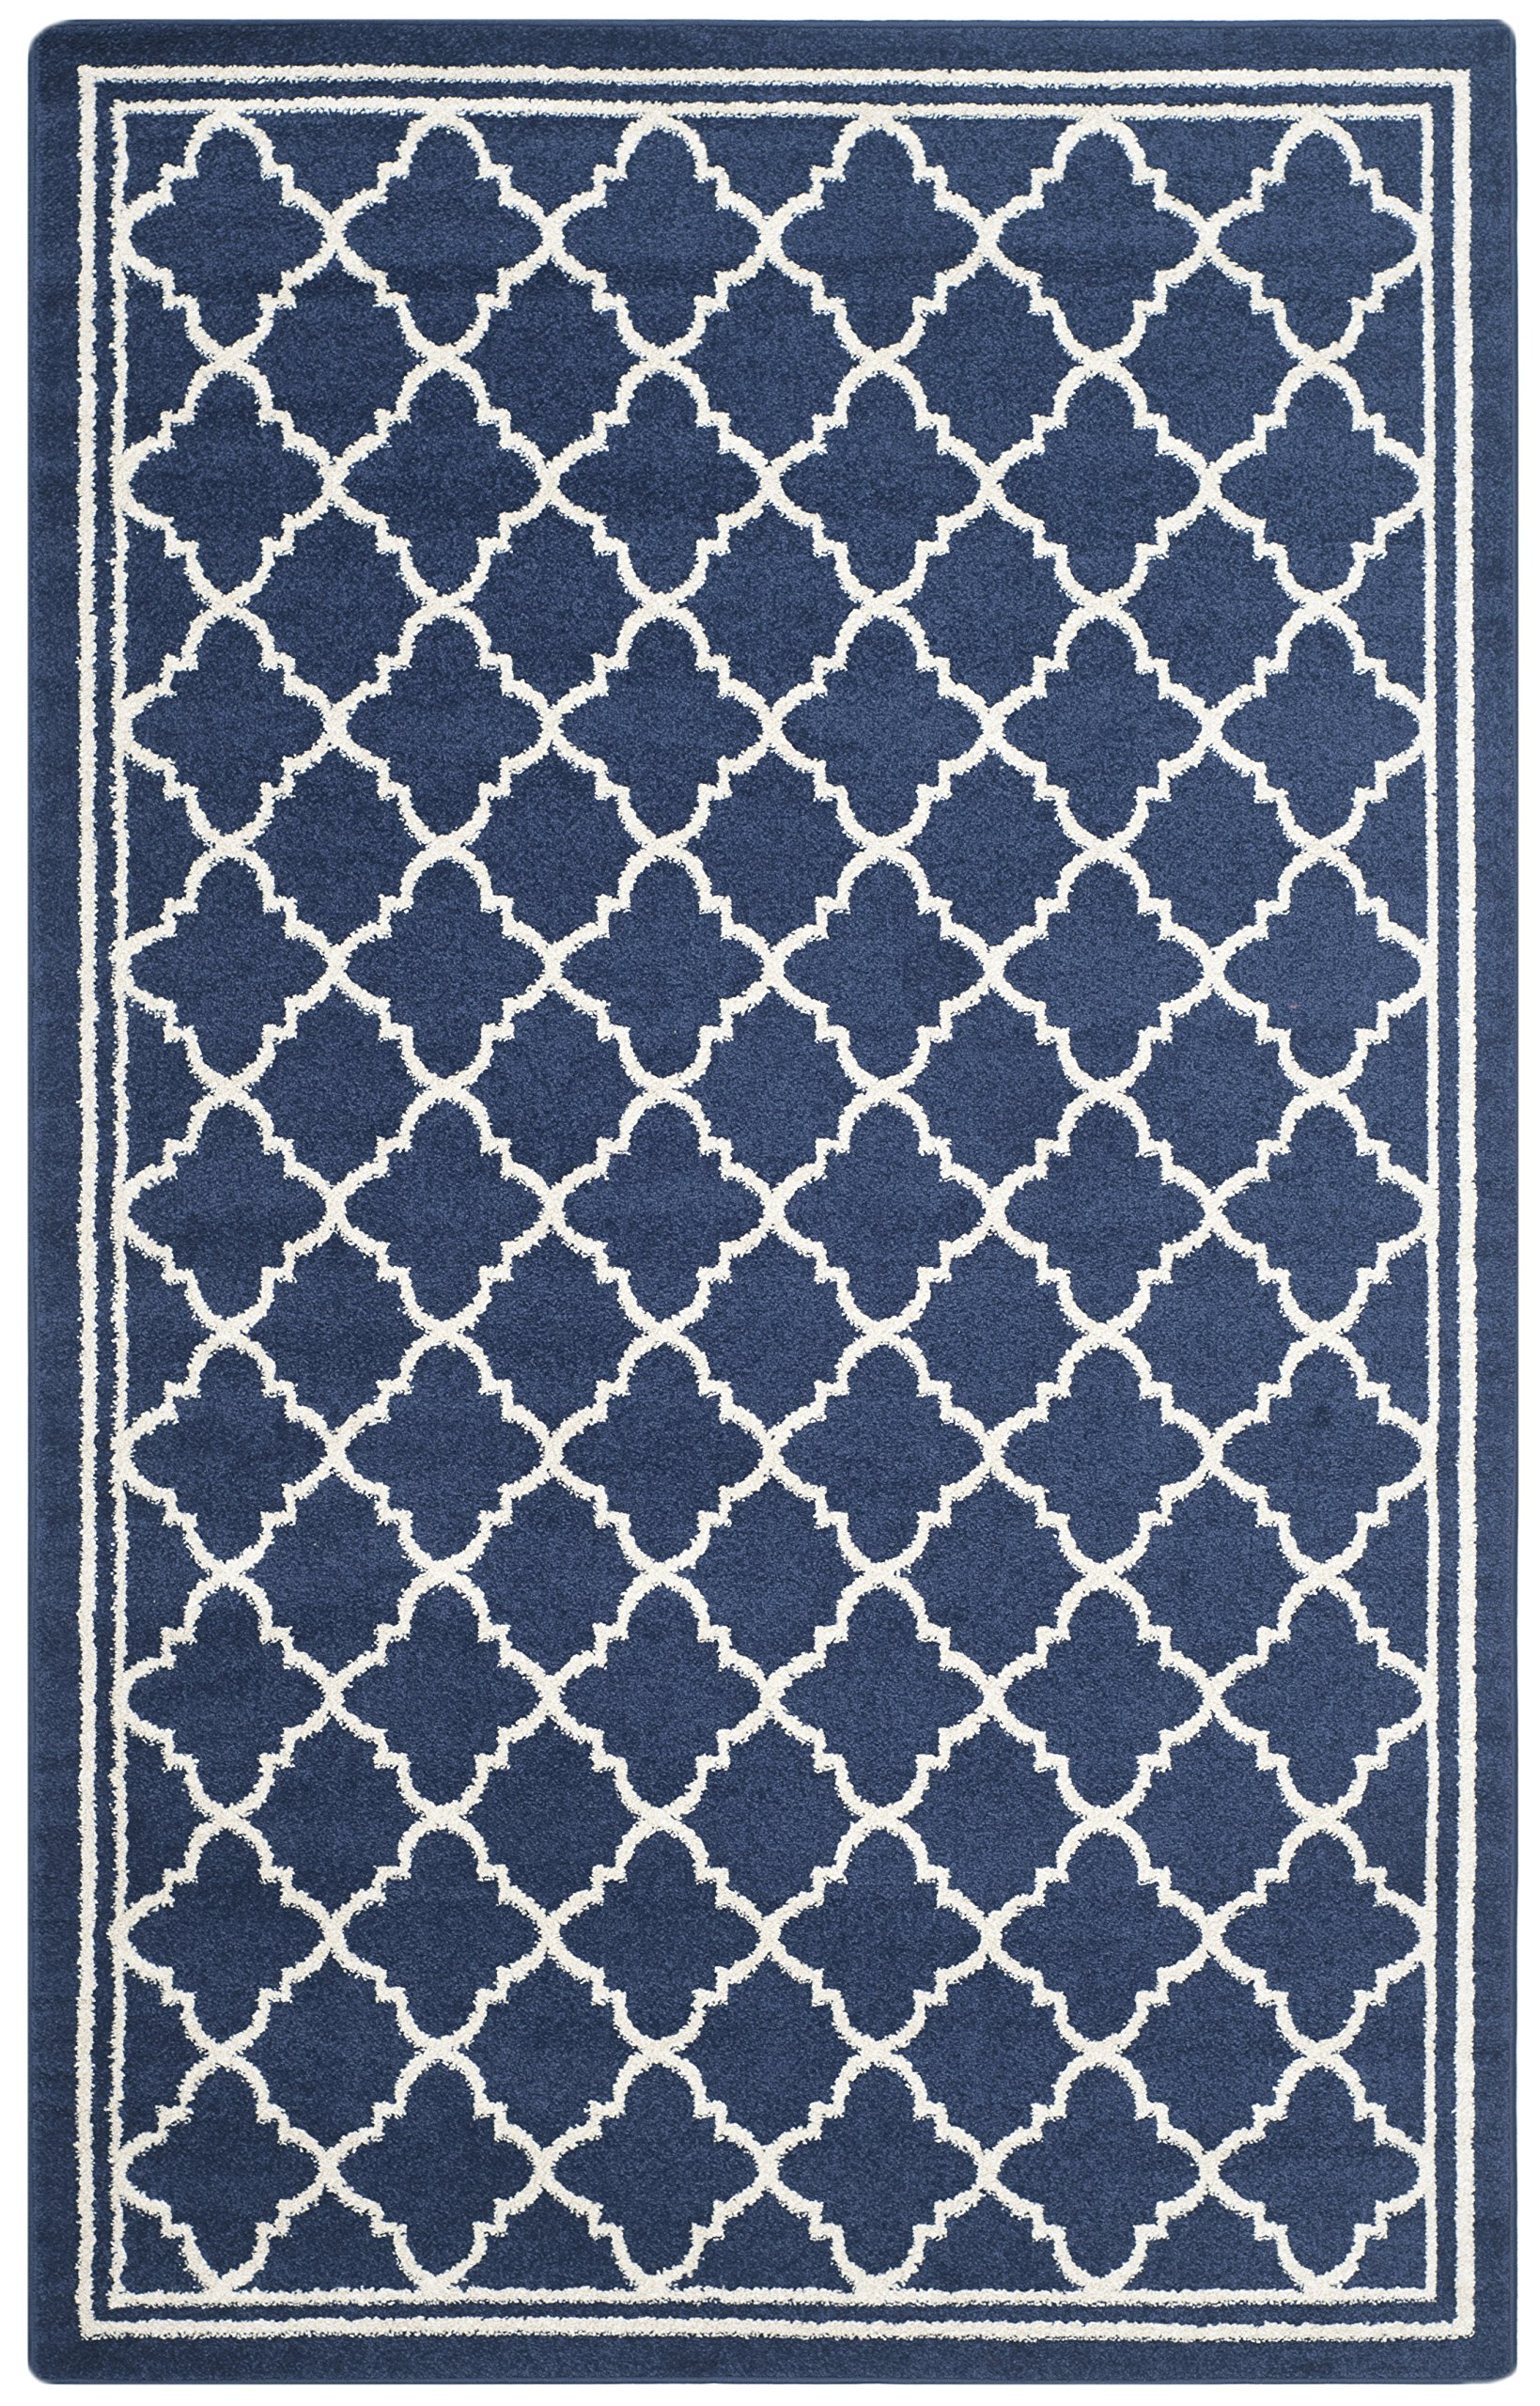 Safavieh Amherst Collection AMT422P Navy and Beige Indoor/ Outdoor Area Rug (6' x 9') - Stunning polypropylene fibers make this rug soft and luxurious to the touch The power loomed construction adds durability to this rug, ensuring it will be a favorite for many years The modern, geometric pattern of this rugs will give your room a fresh accent - living-room-soft-furnishings, living-room, area-rugs - A1oM%2BJbRGCL -